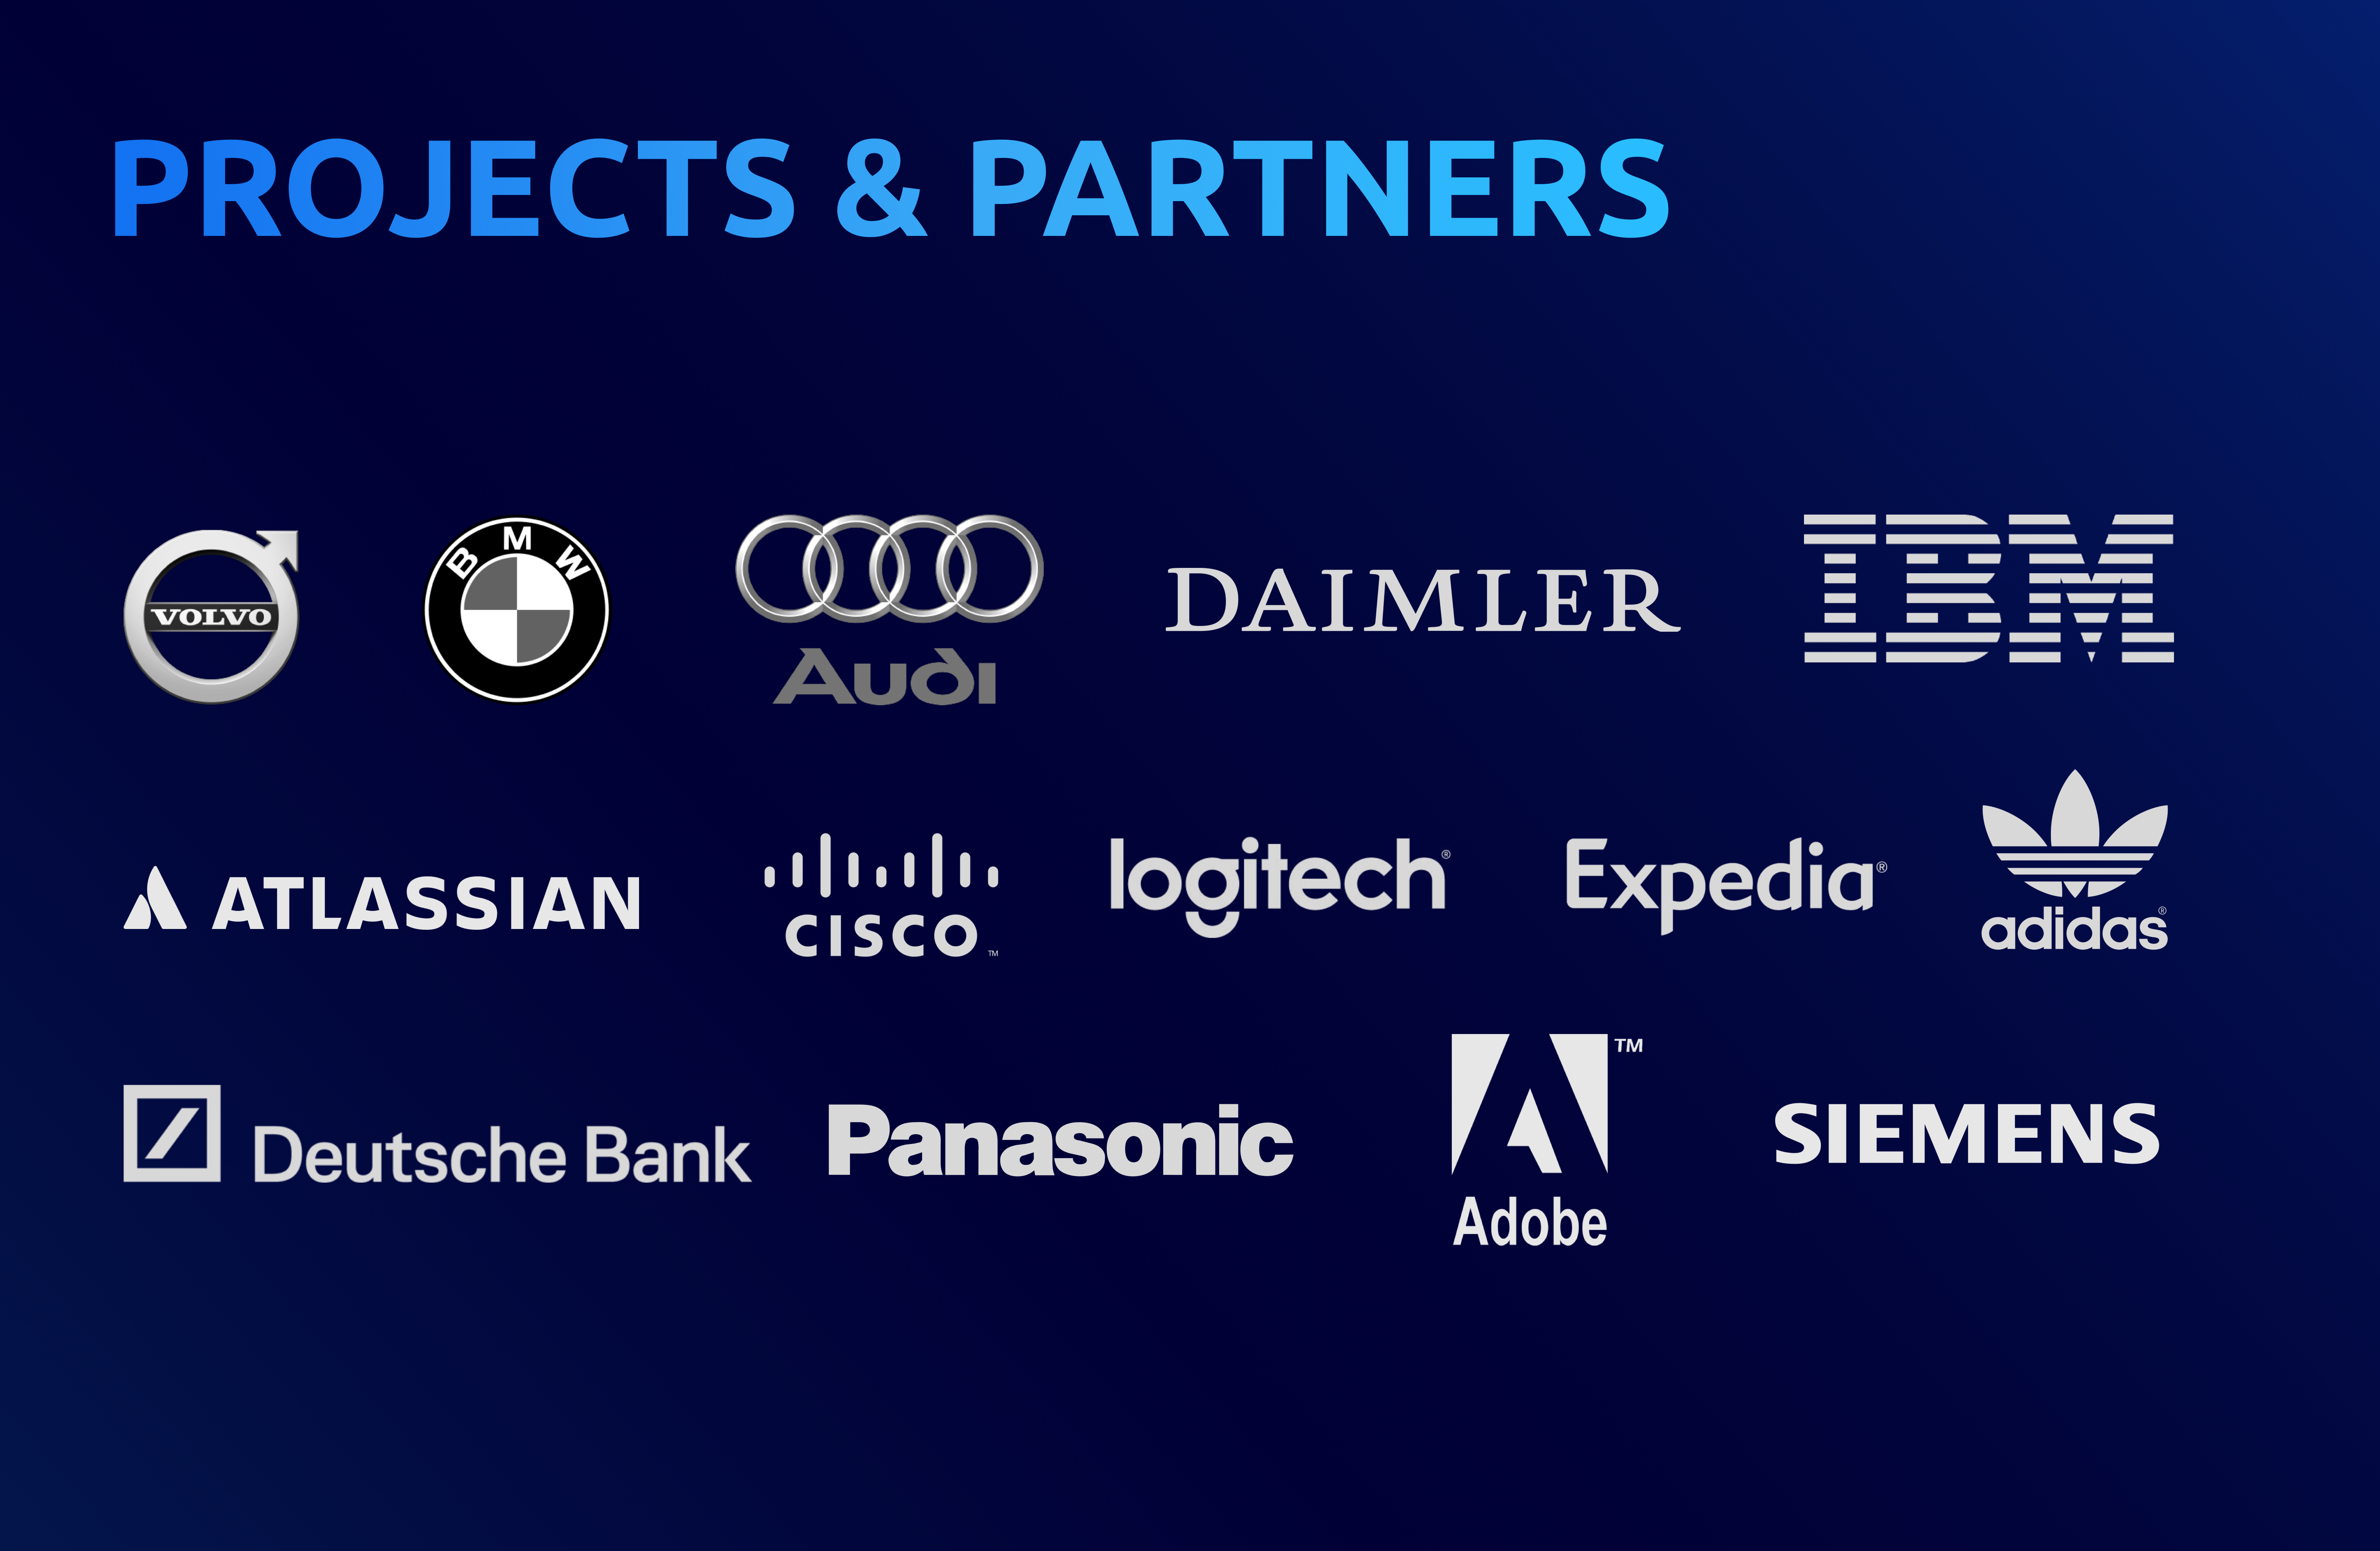 Projects and Partners